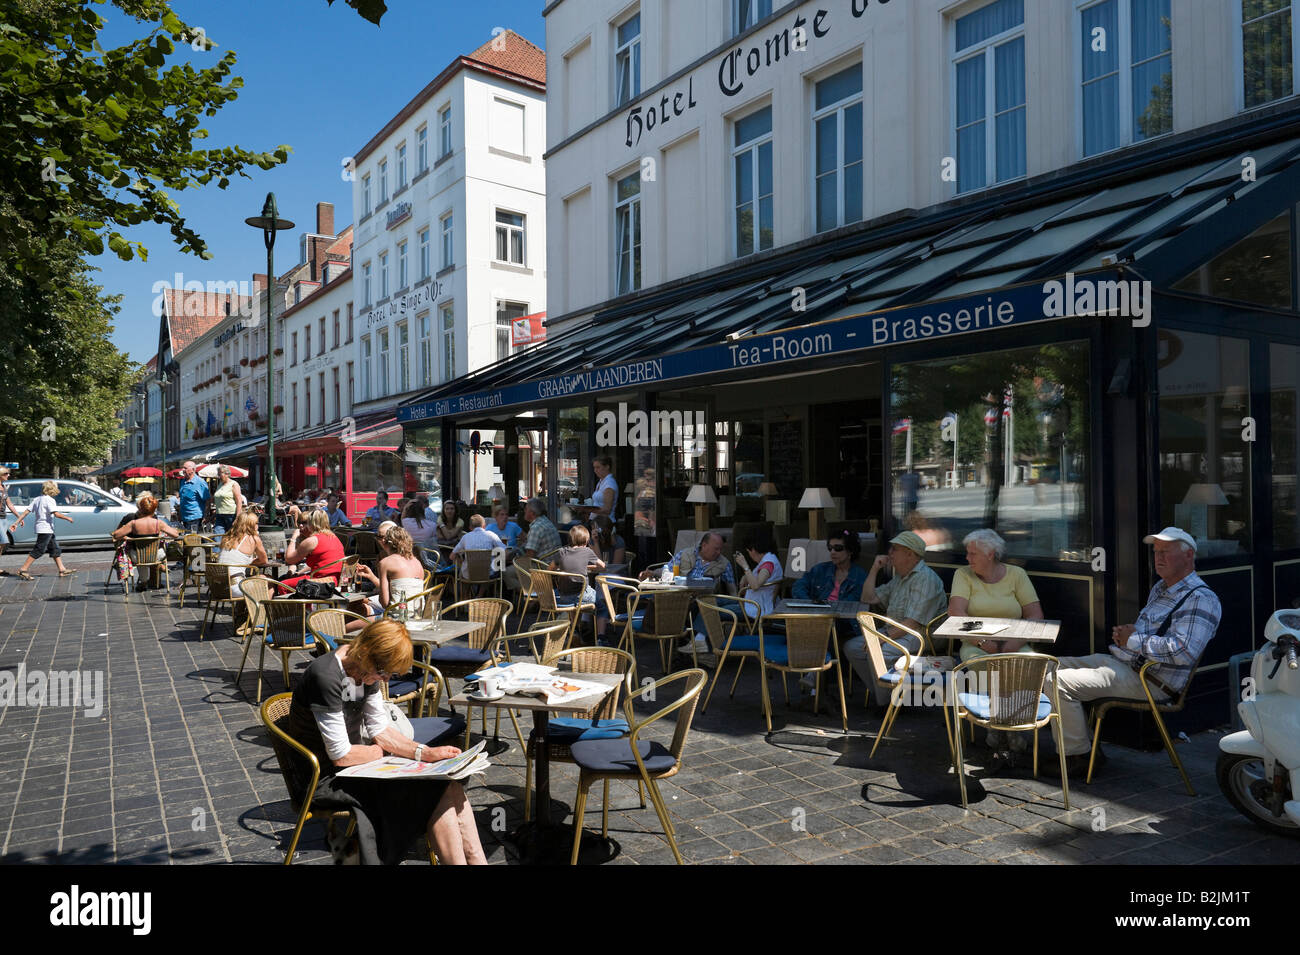 Cafes in T'Zand in the old town, Bruges, Belgium - Stock Image